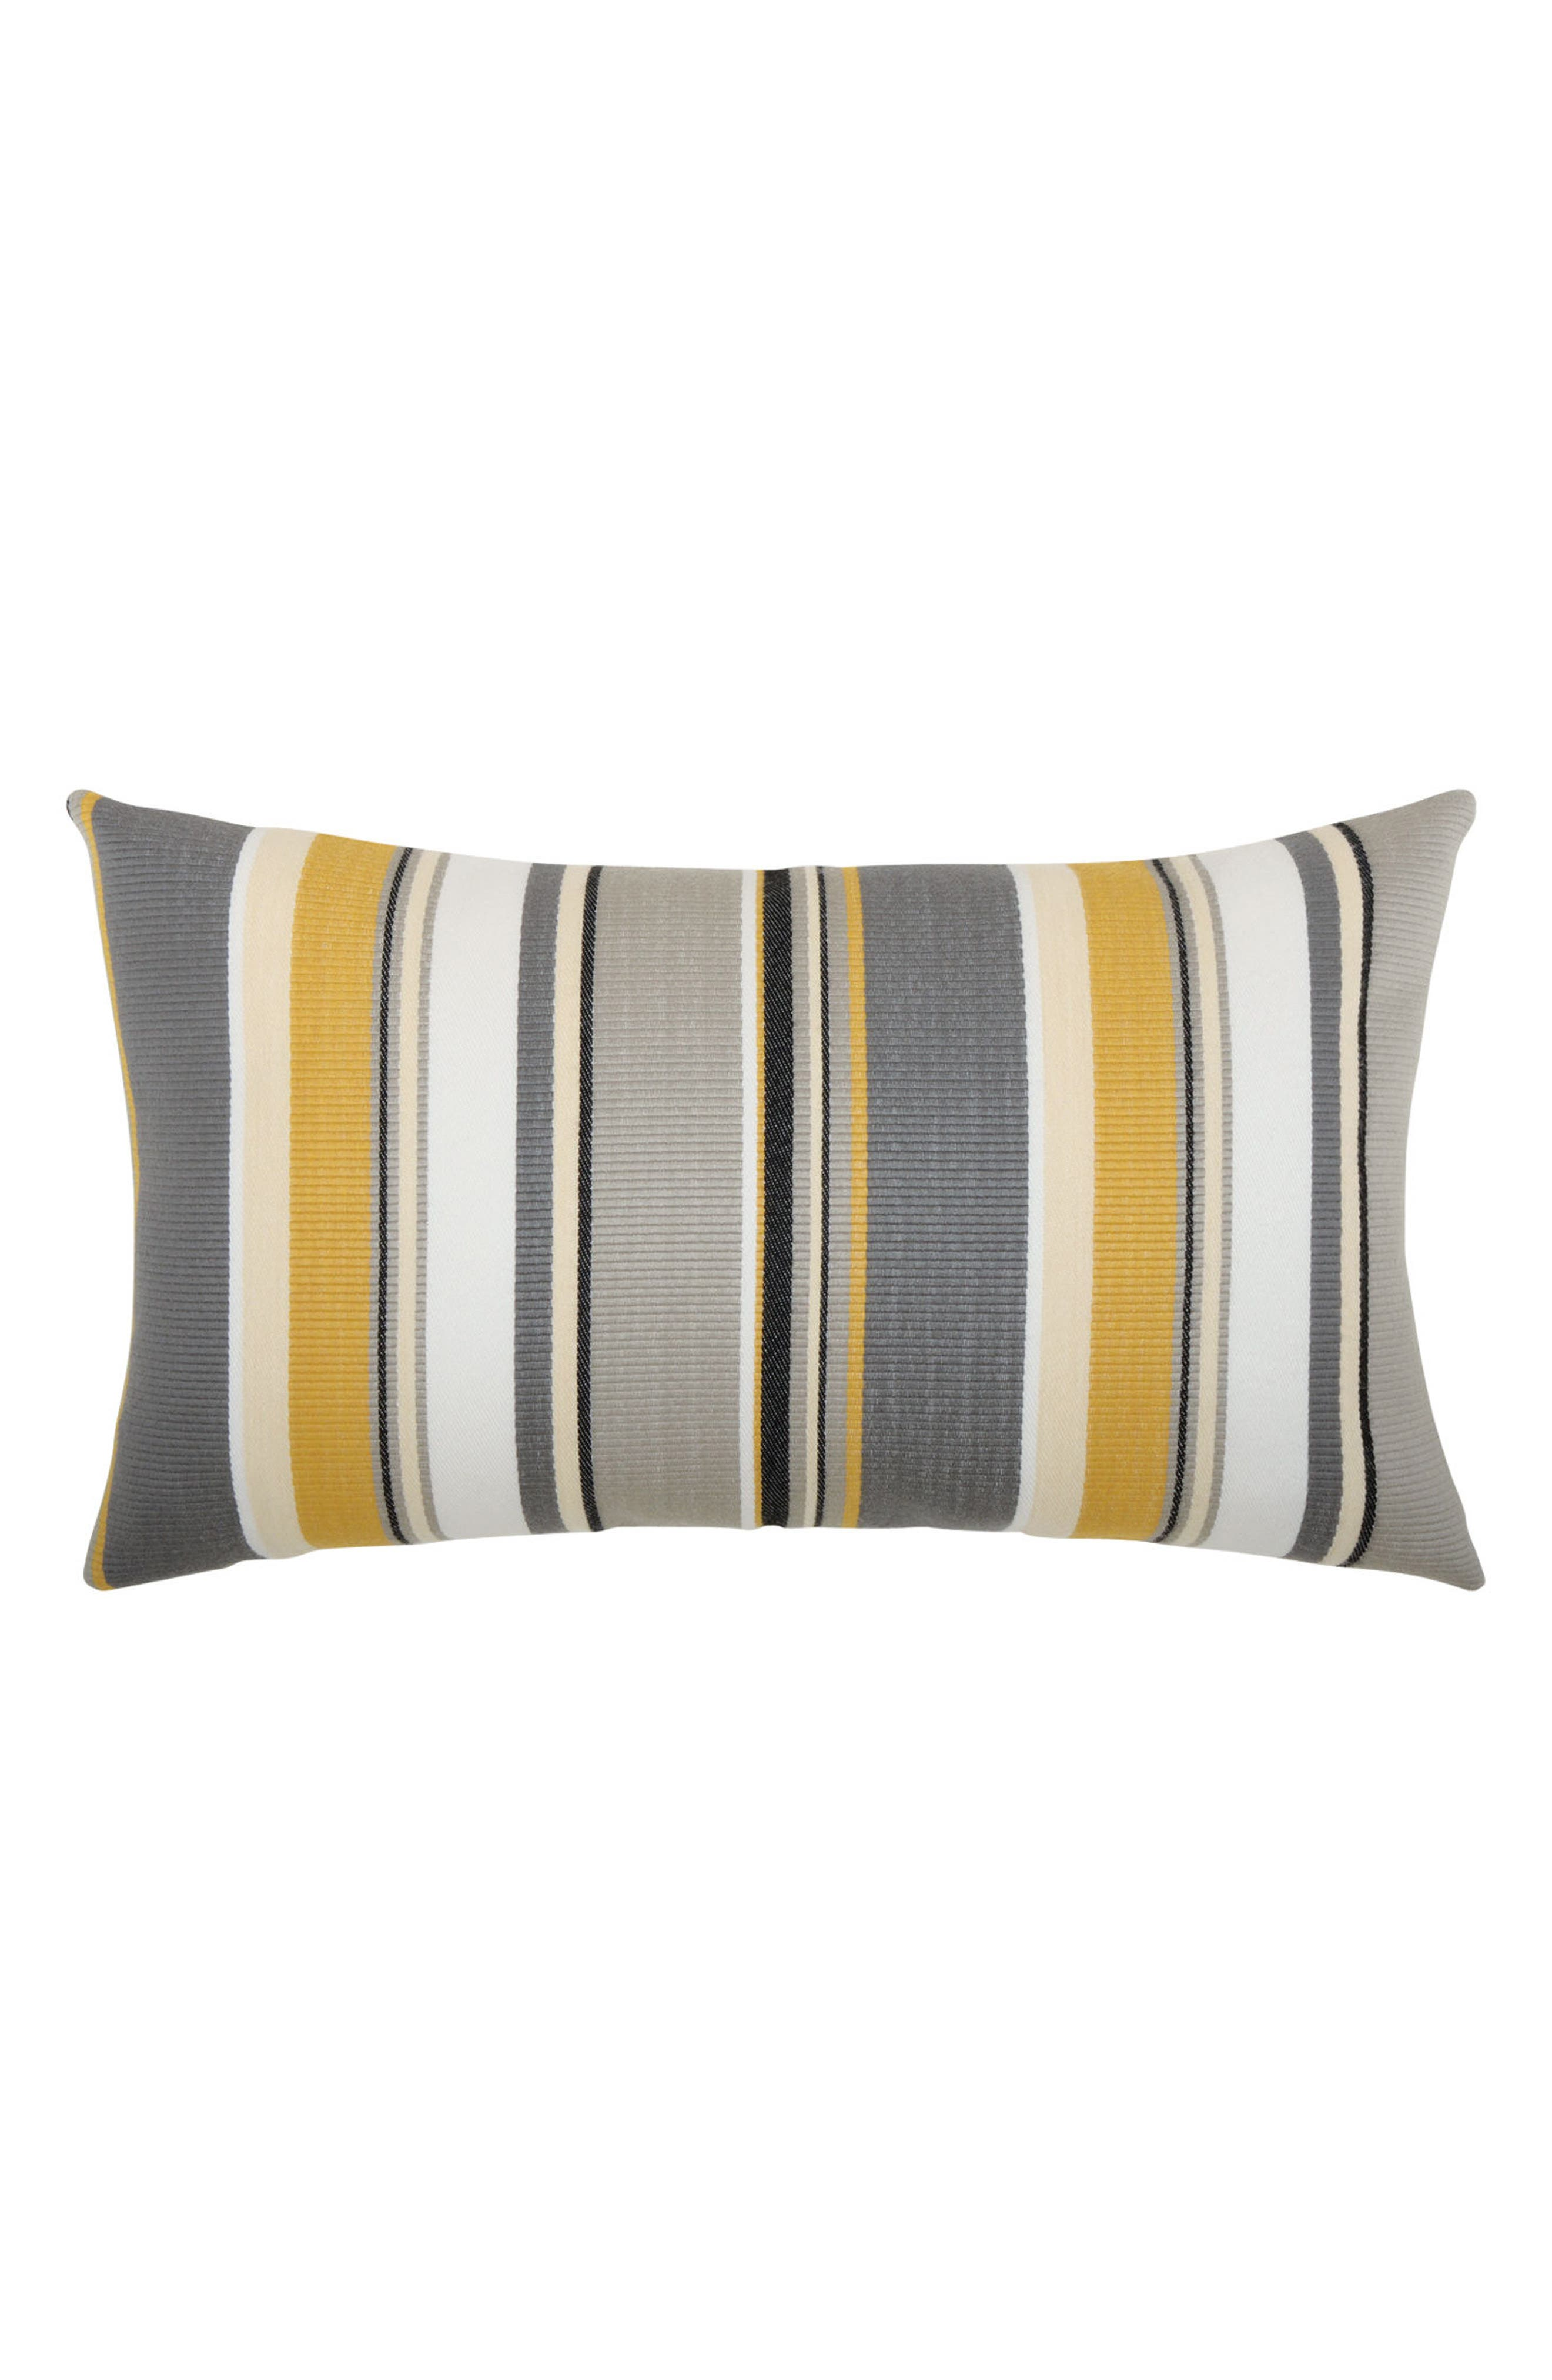 Shadow Stripe Lumbar Pillow,                         Main,                         color, Grey/ Gold